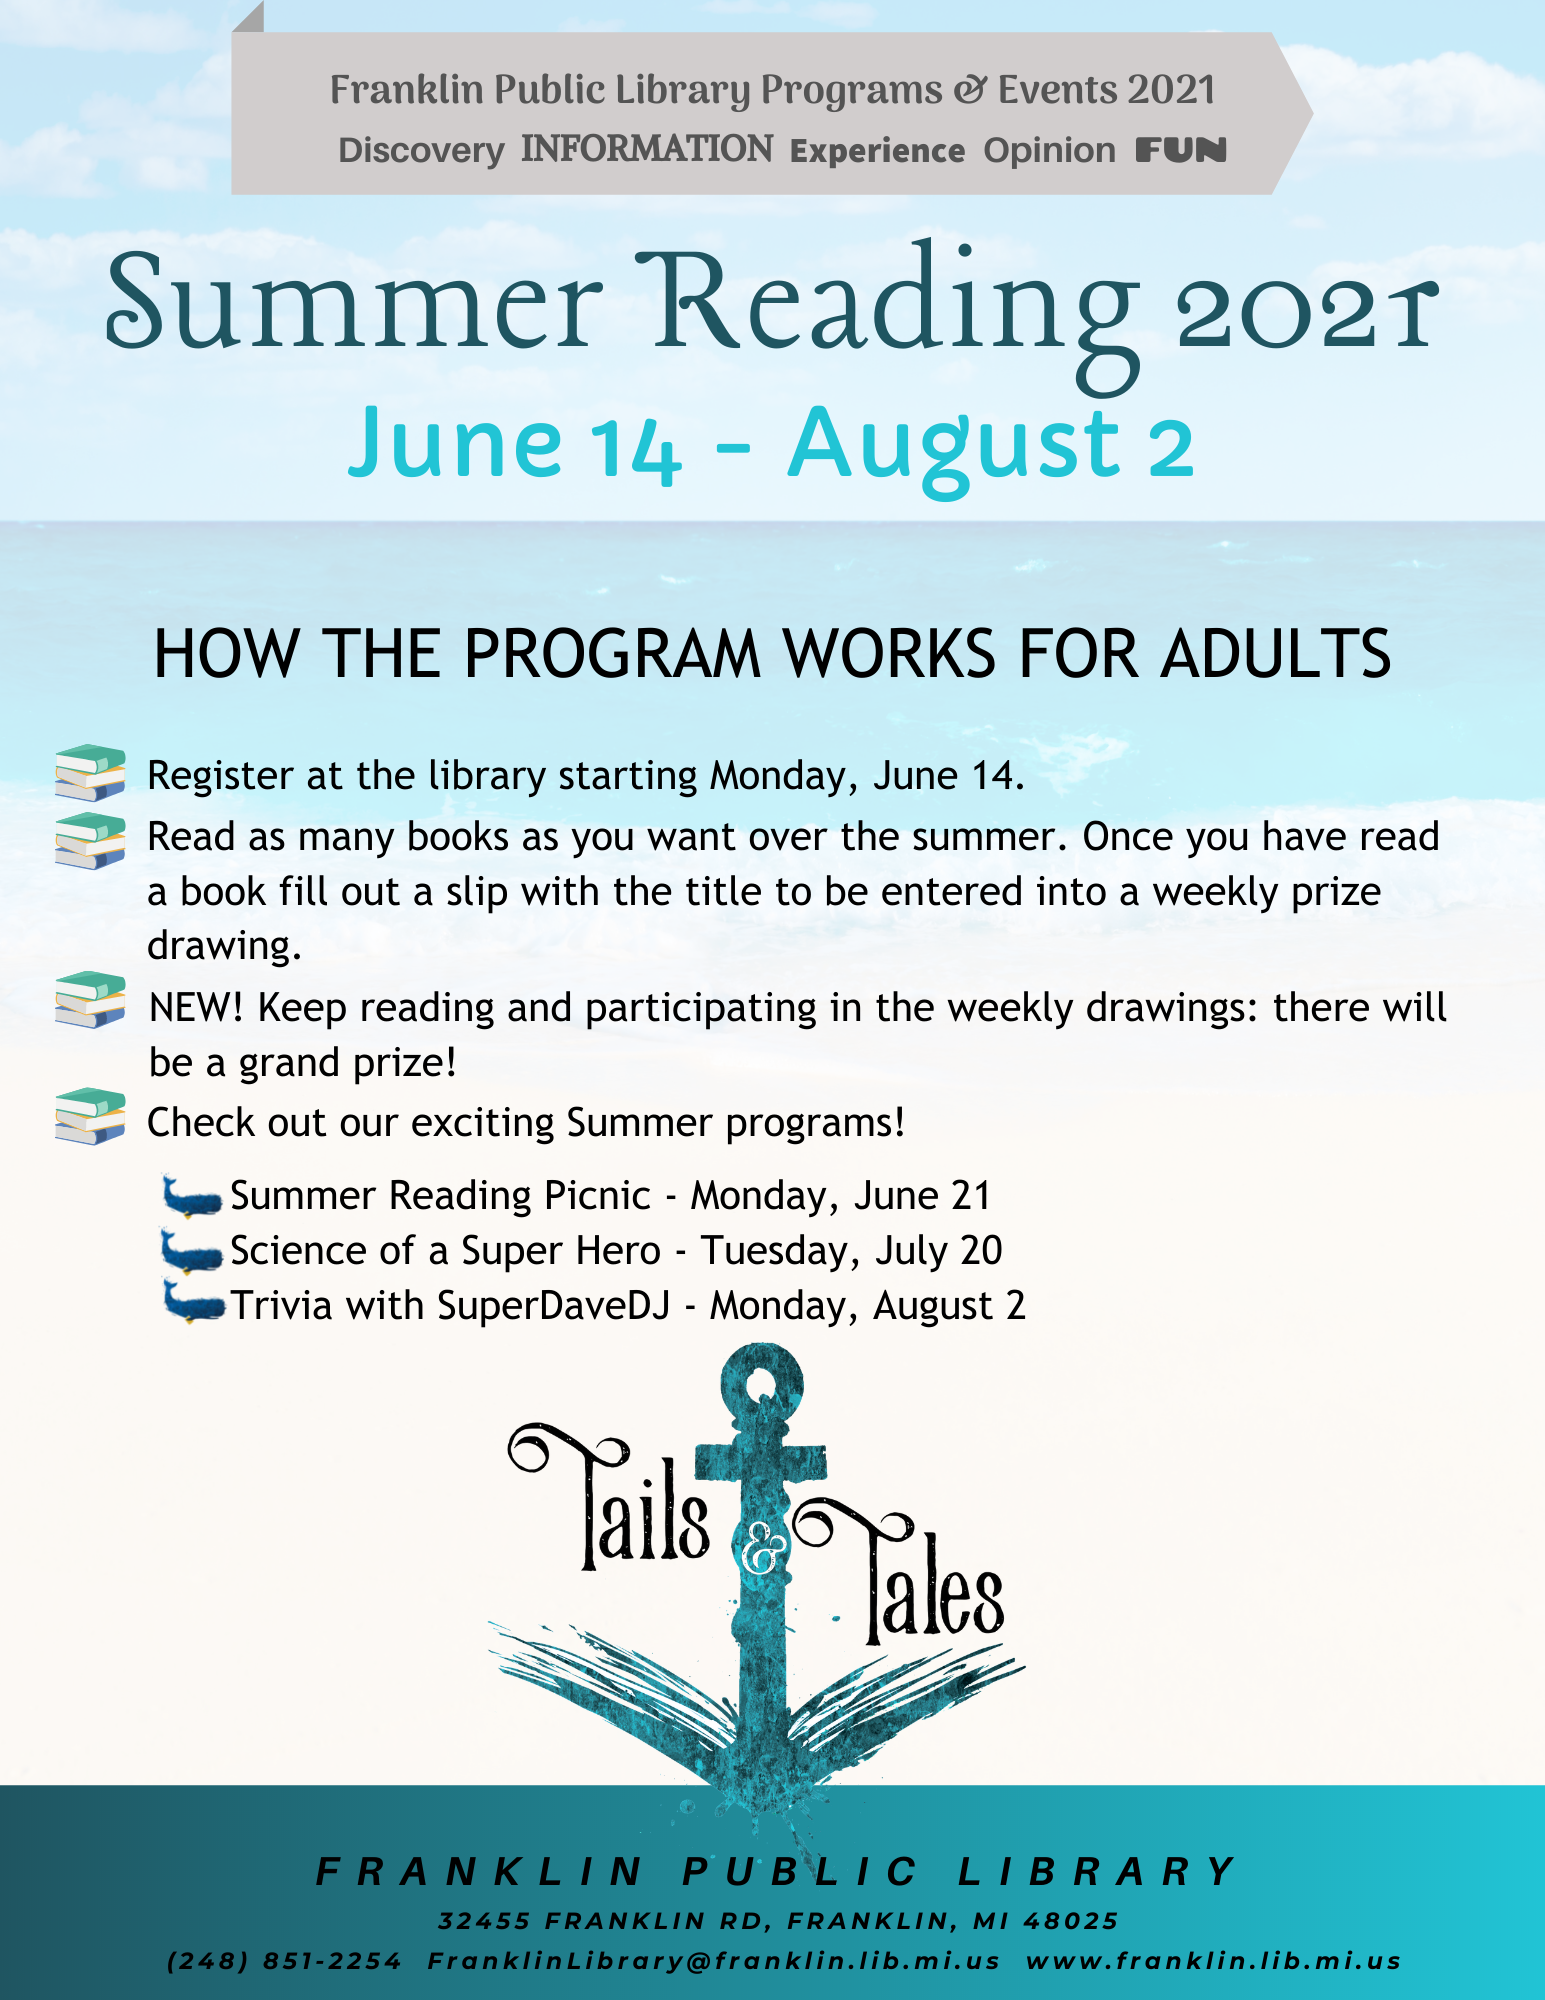 Sea blue background with blue anchor and Summer Reading Rules for adults